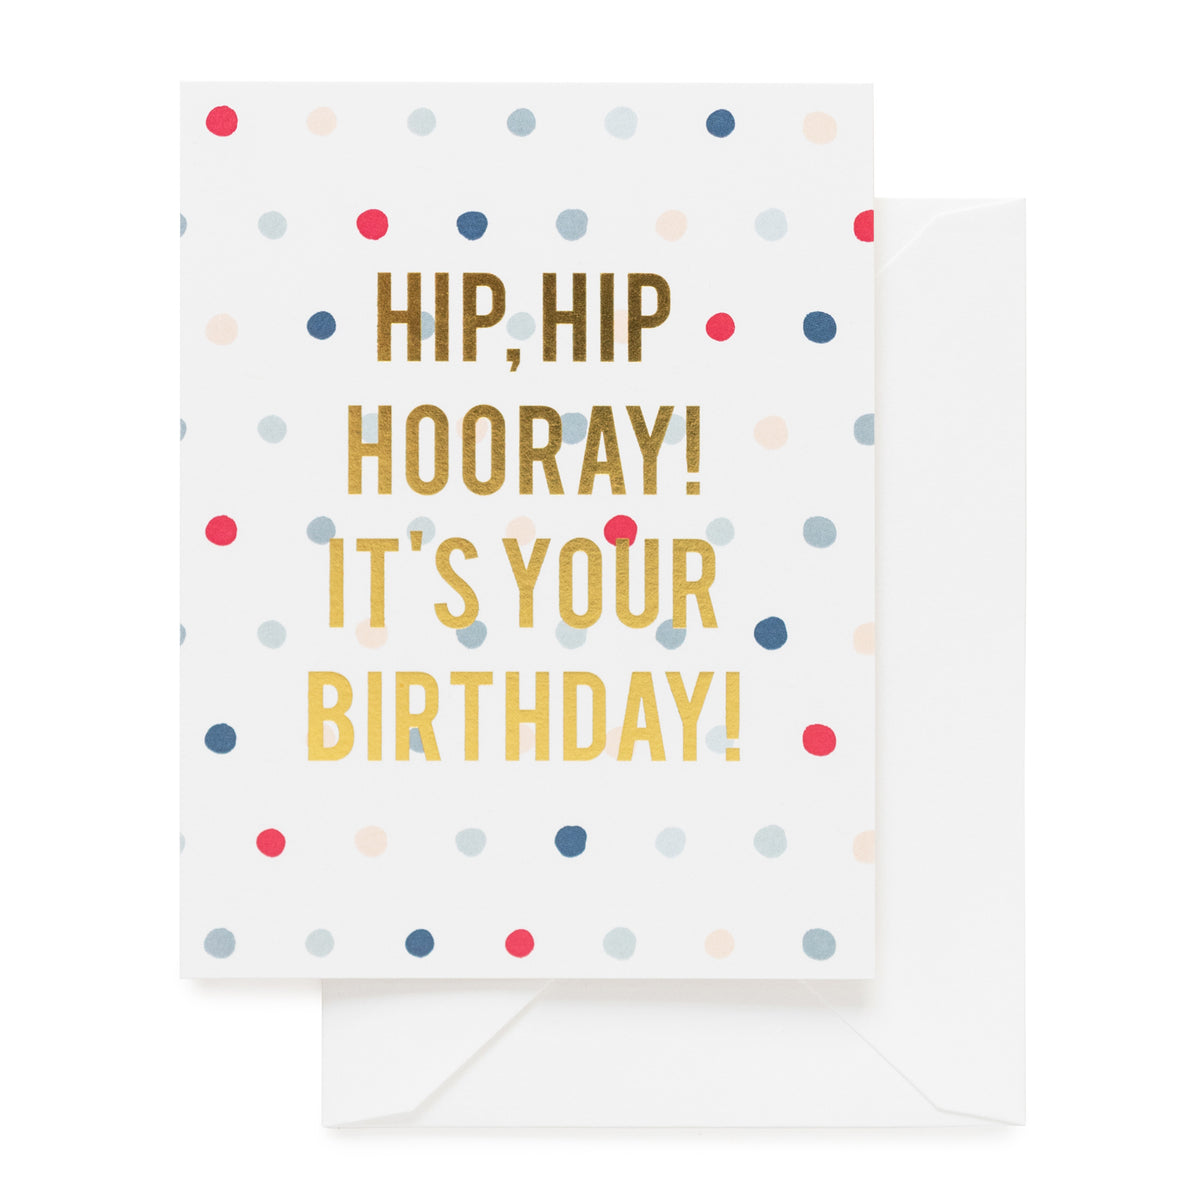 Colorful polka dot and gold foil birthday card